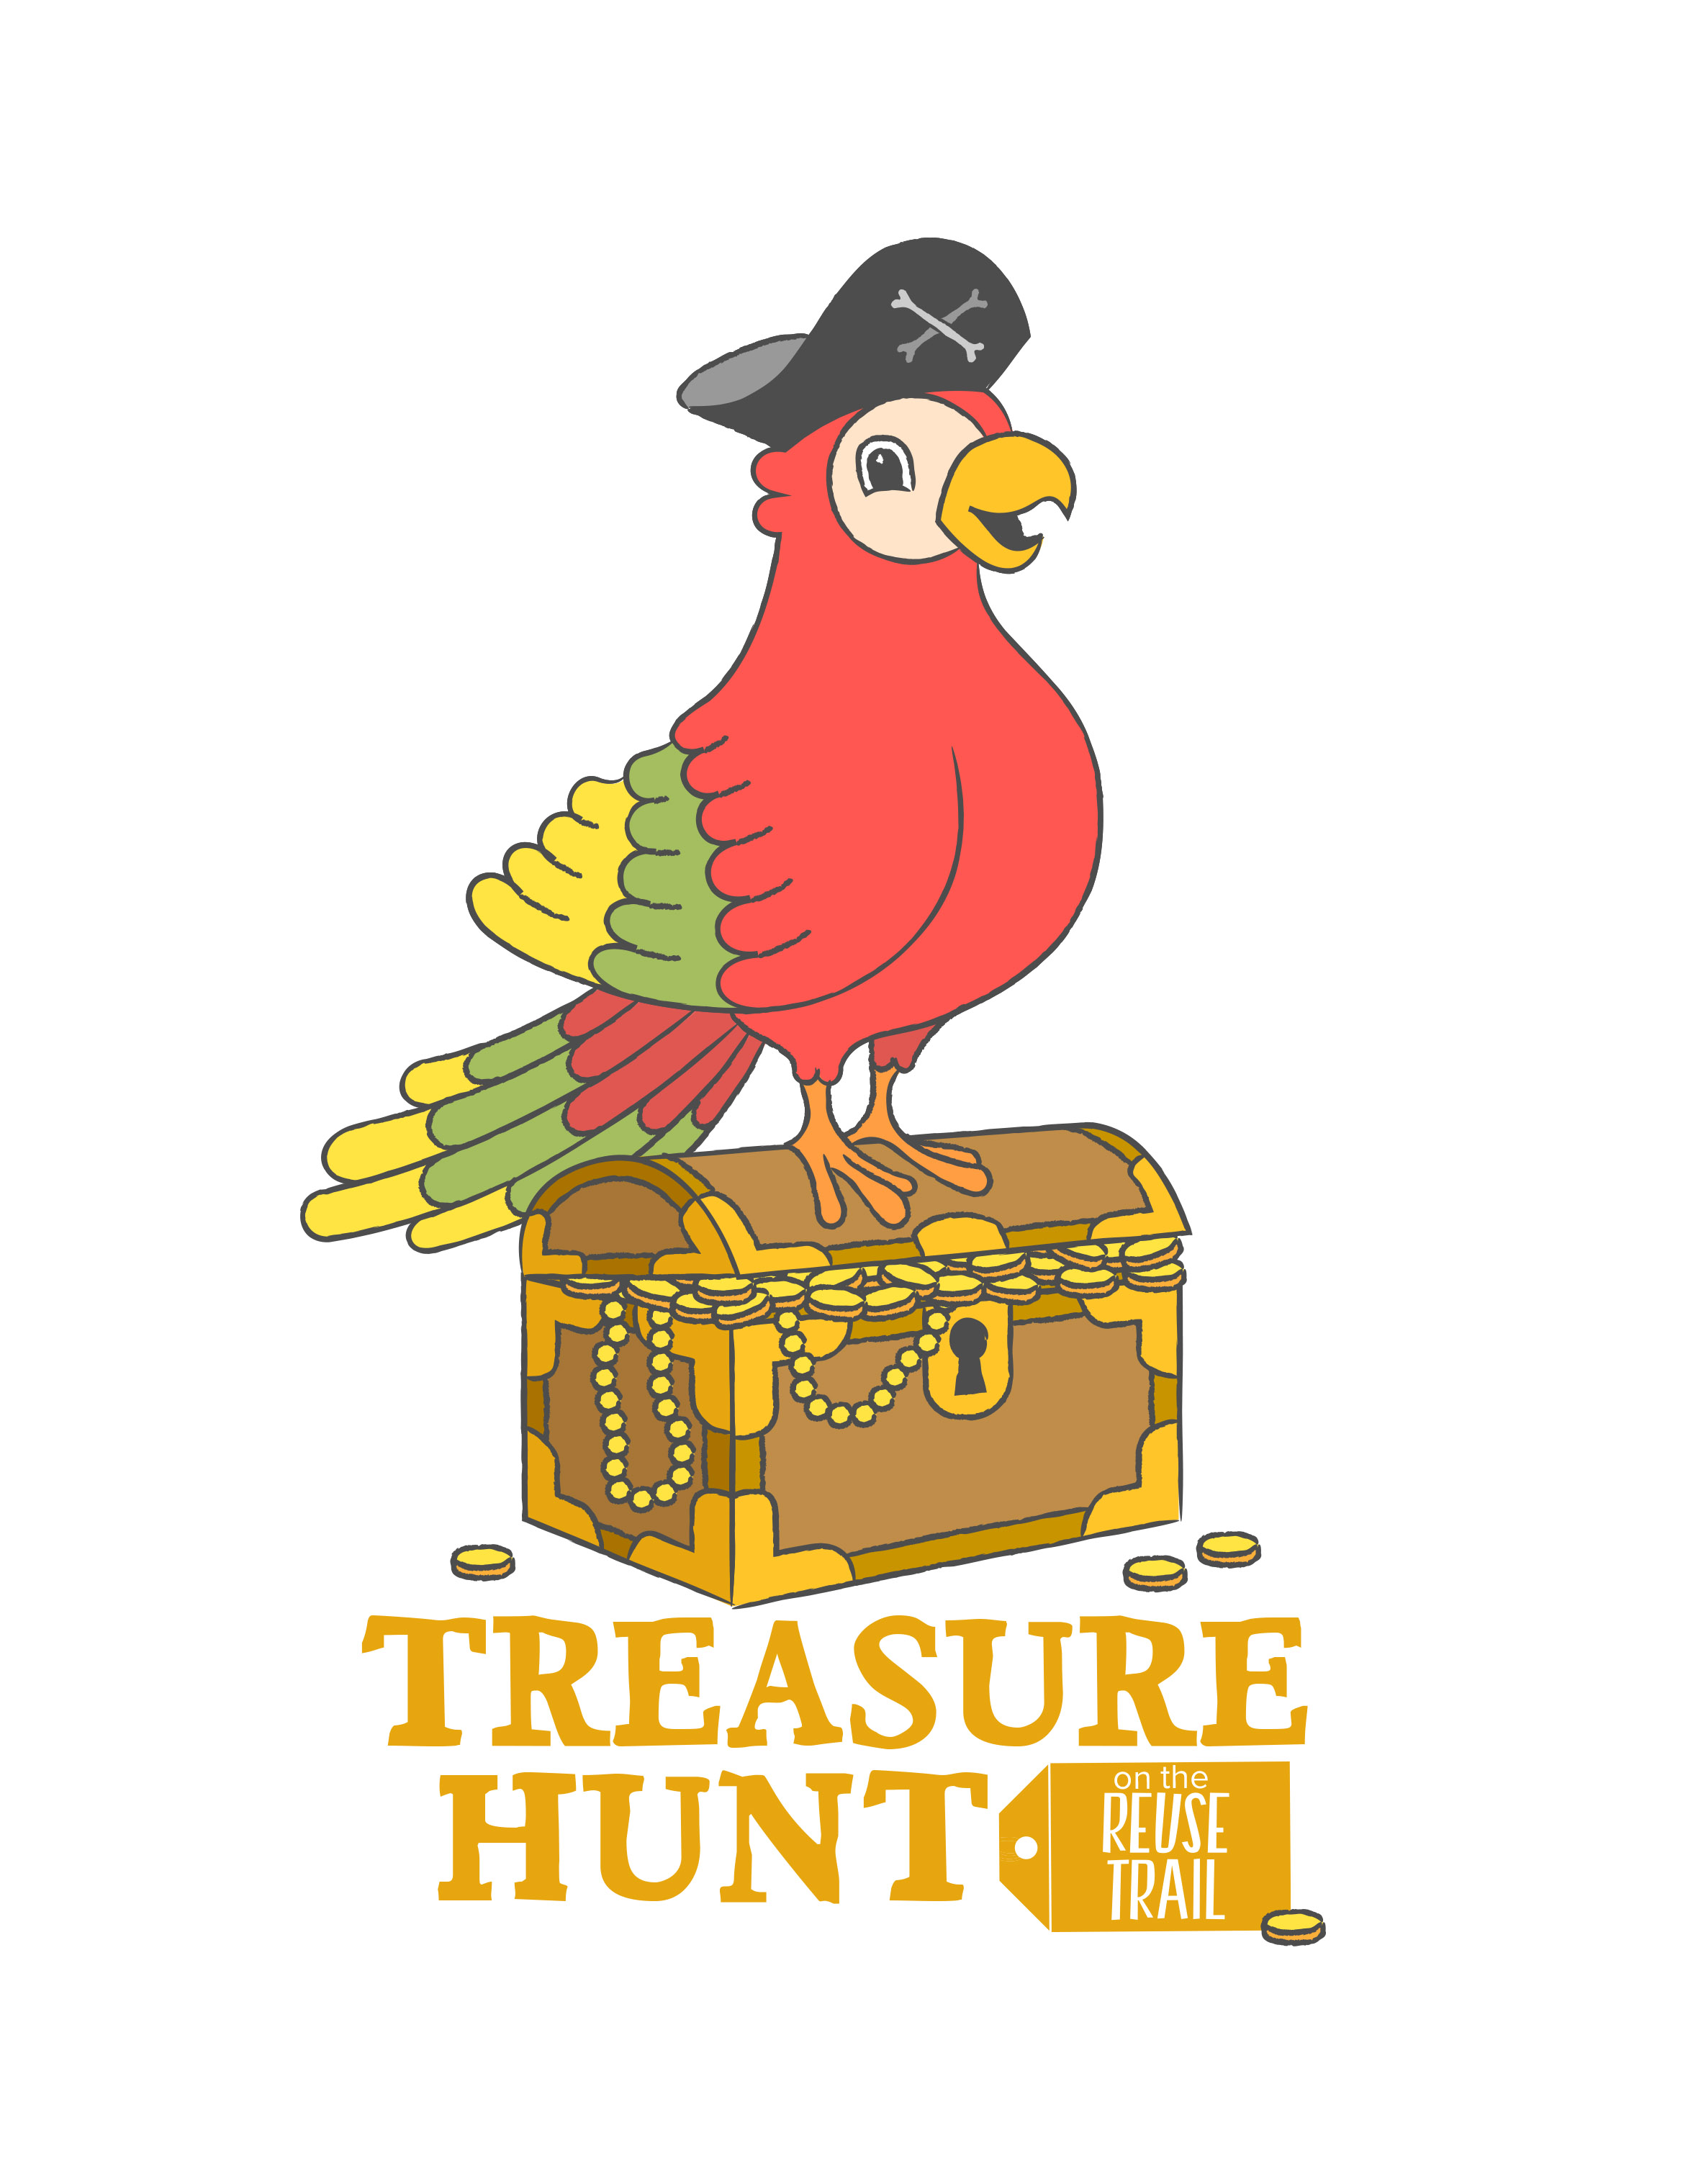 Treasure hunt LOGO1 (1).jpg